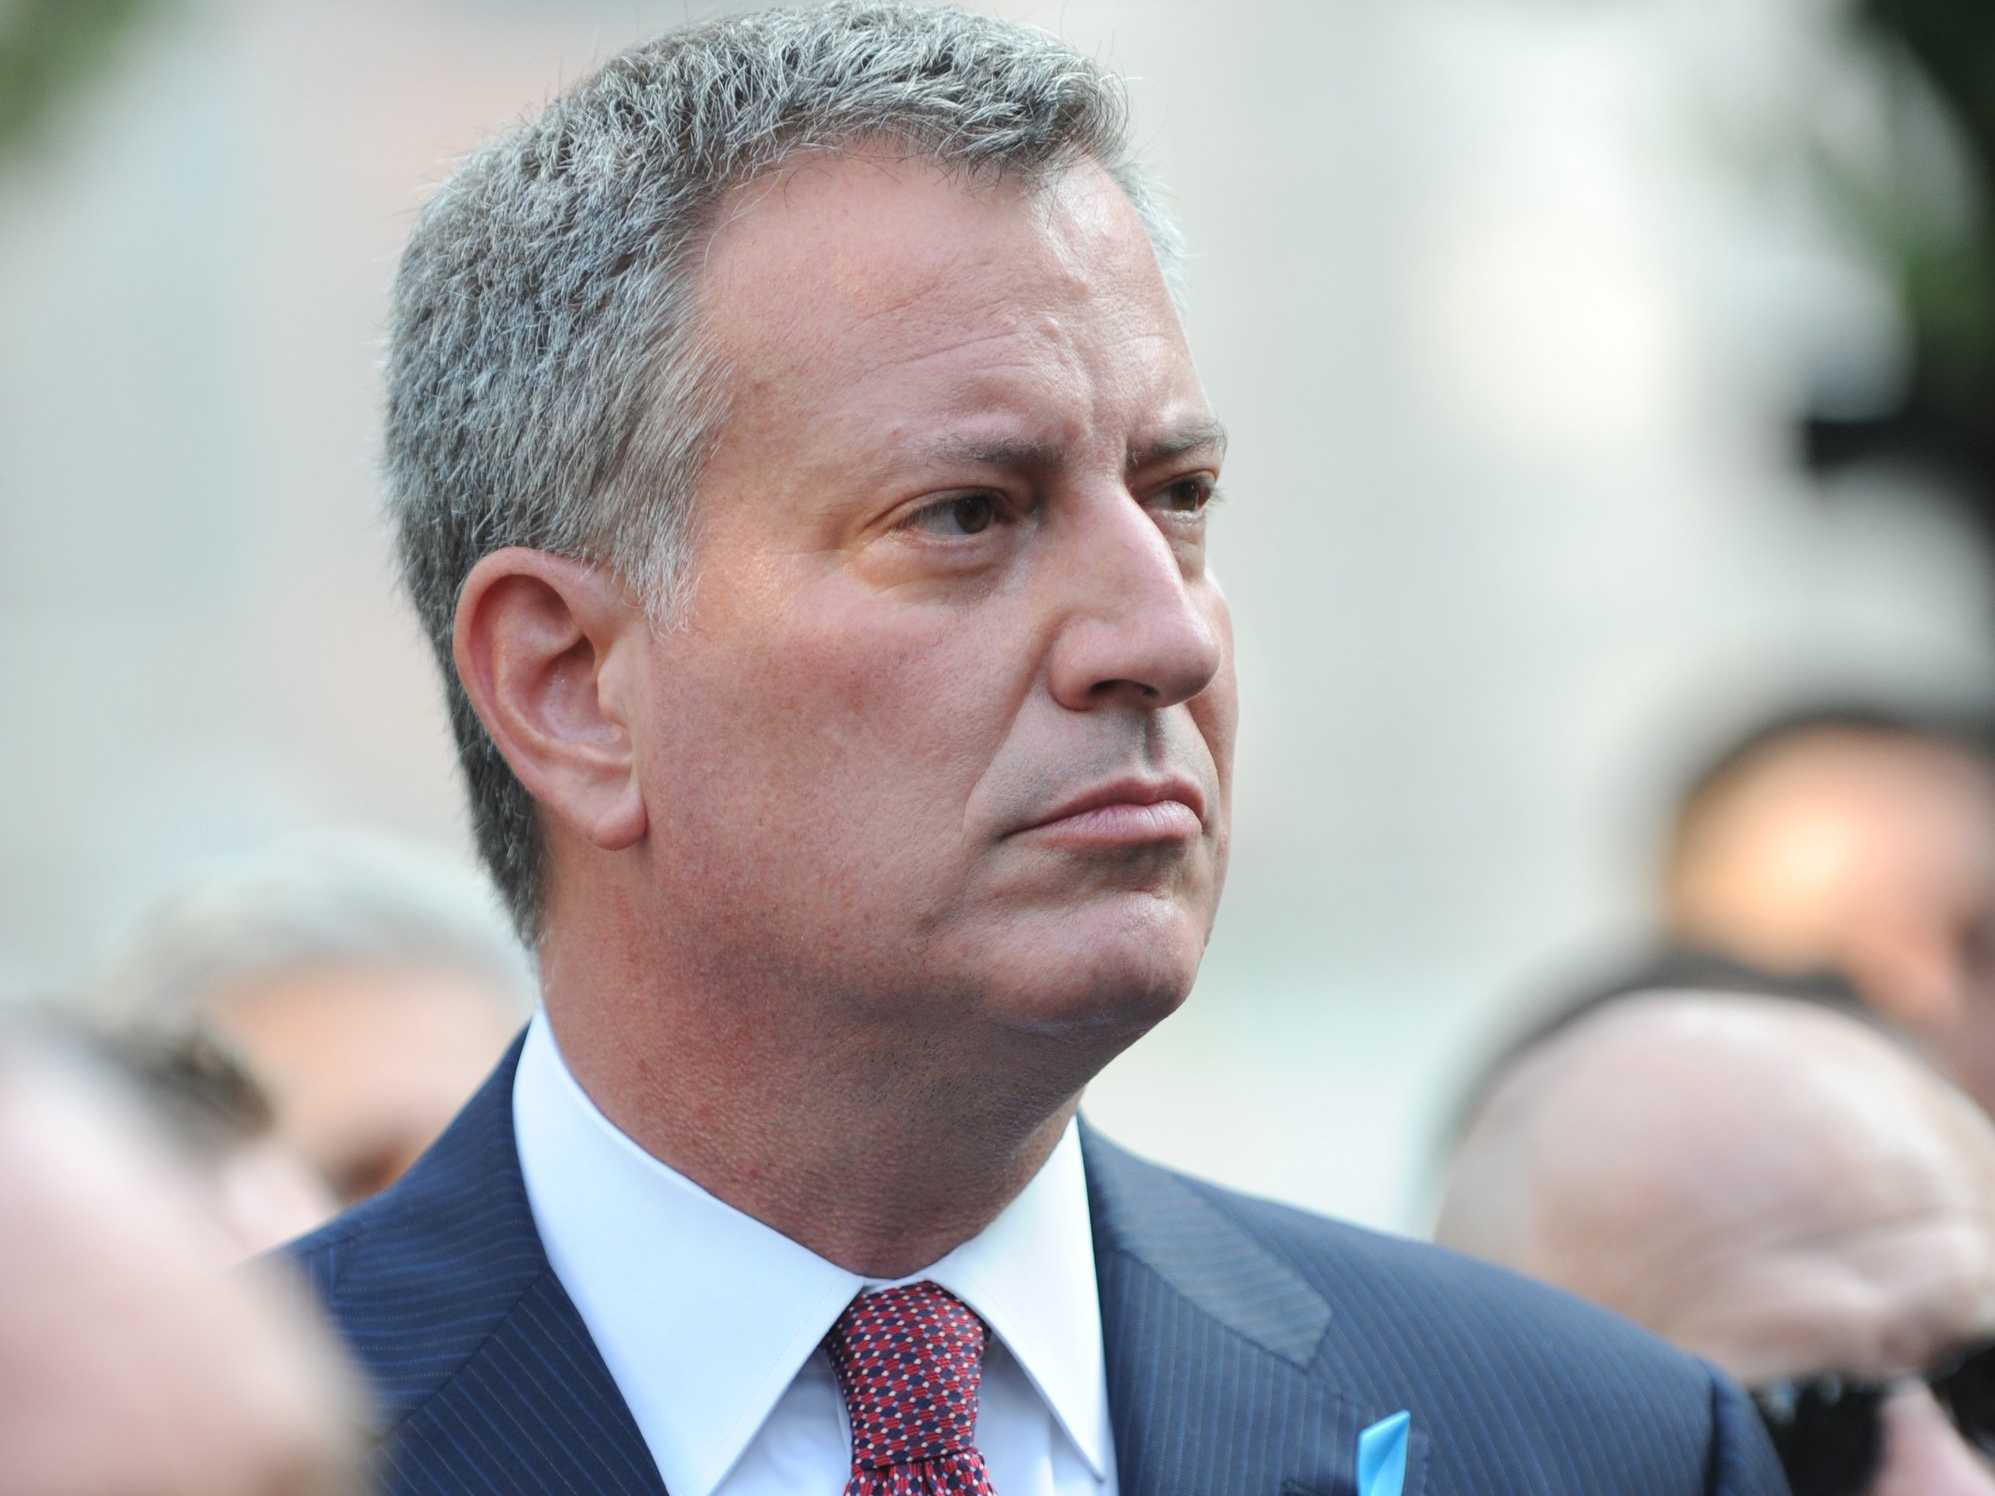 New York City Mayor Bill De Blasio Orders Vaccinations Amid Measles Outbreak